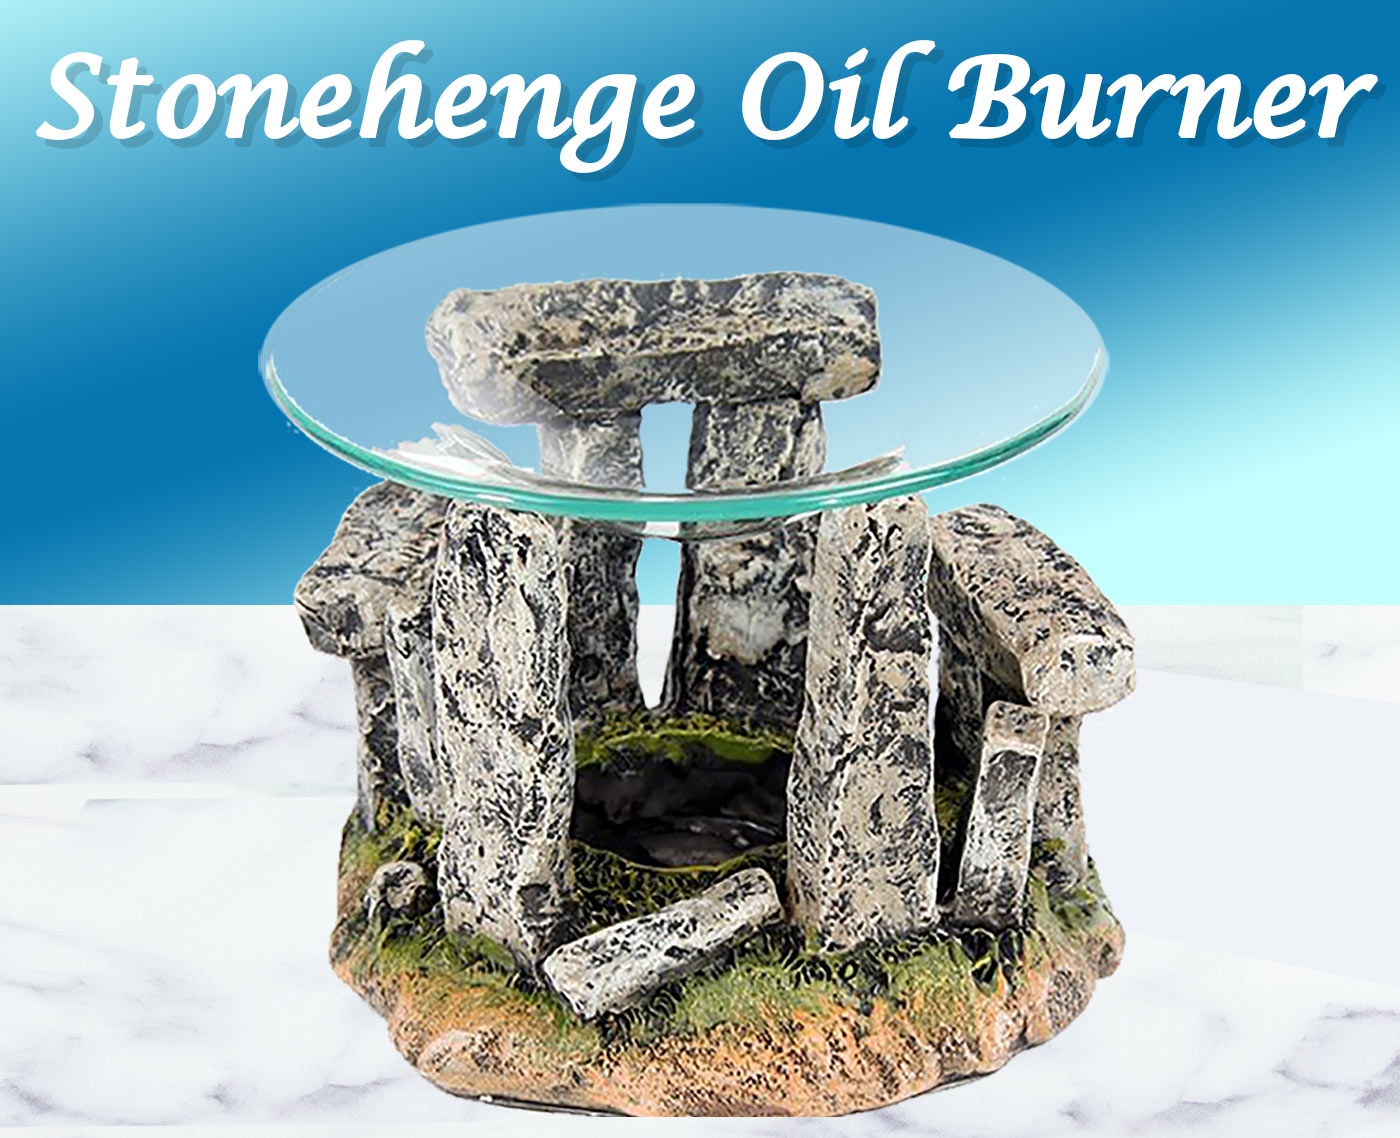 Stonehenge oil burner - circle of stones